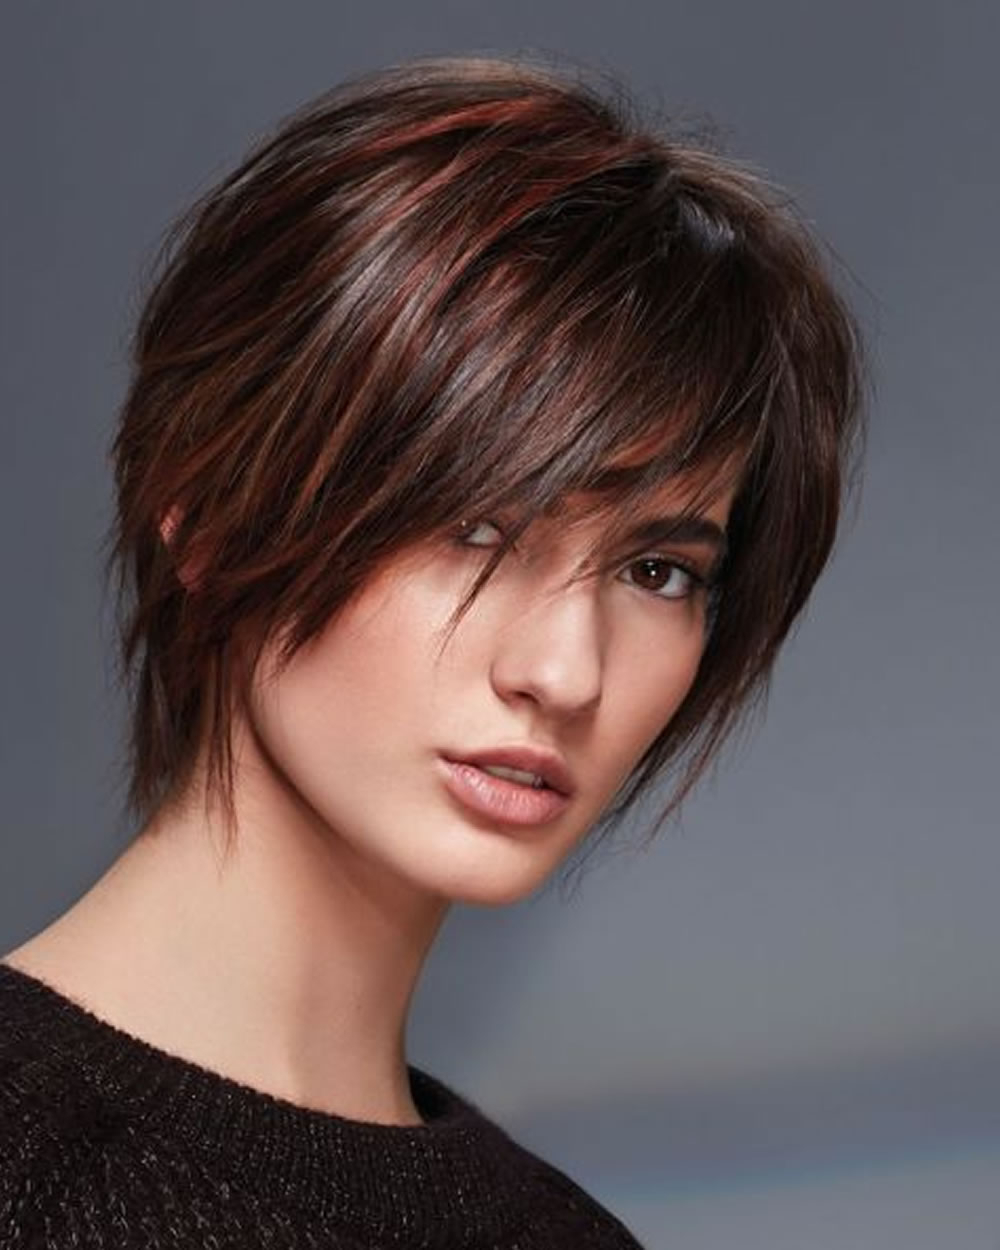 Top 20 Matchless Short Haircuts For Women With Round Faces 2018 2019 Throughout Short Haircuts Women Round Face (View 4 of 25)